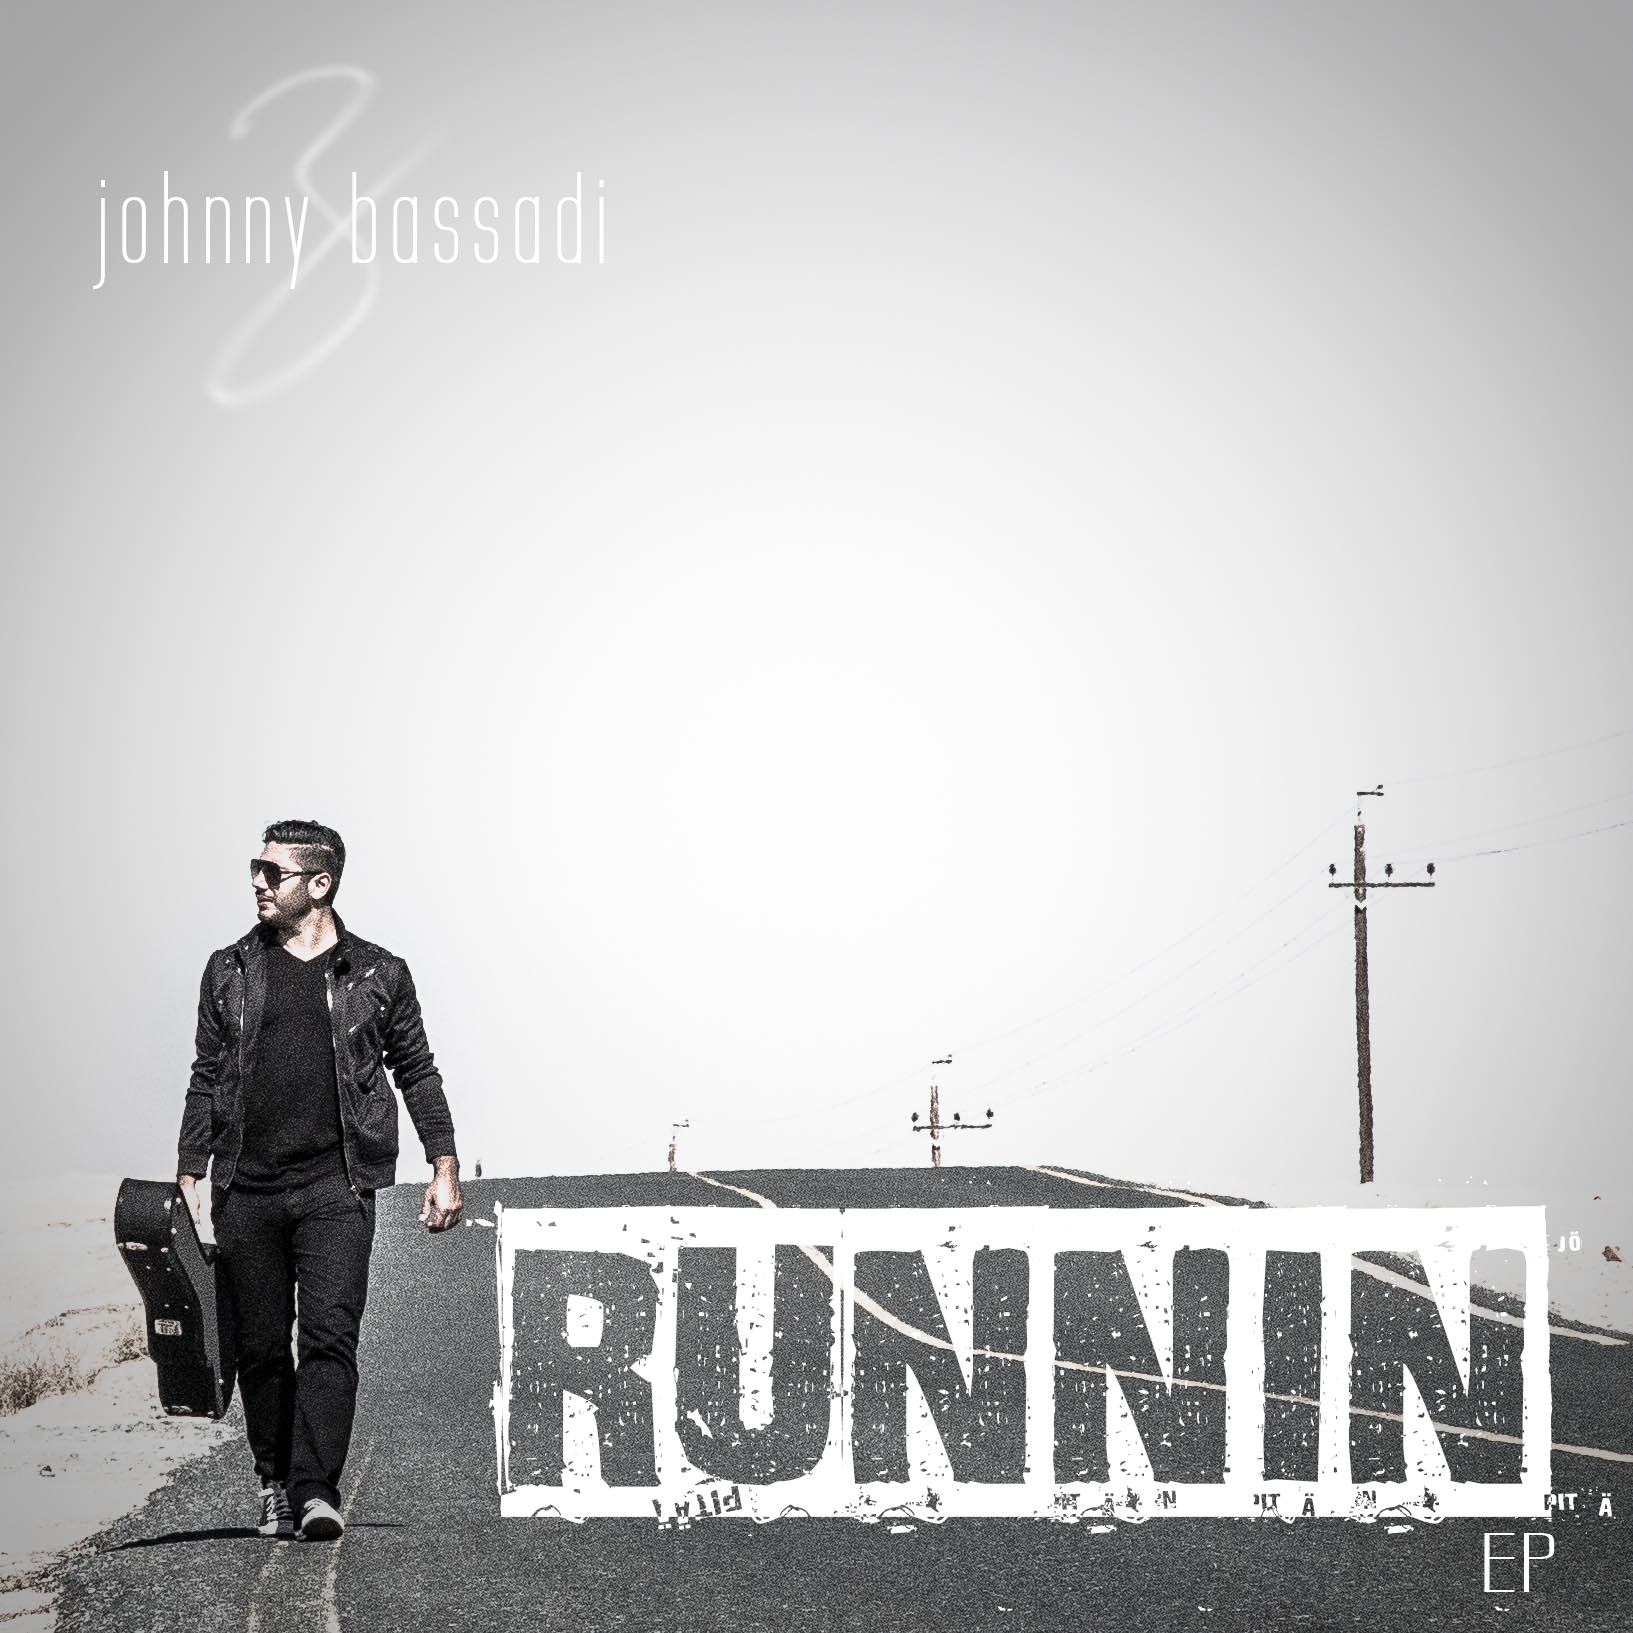 (2019) Runnin' EP - Written & Composed by Johnny Bassadi Produced by Reiner Erlings